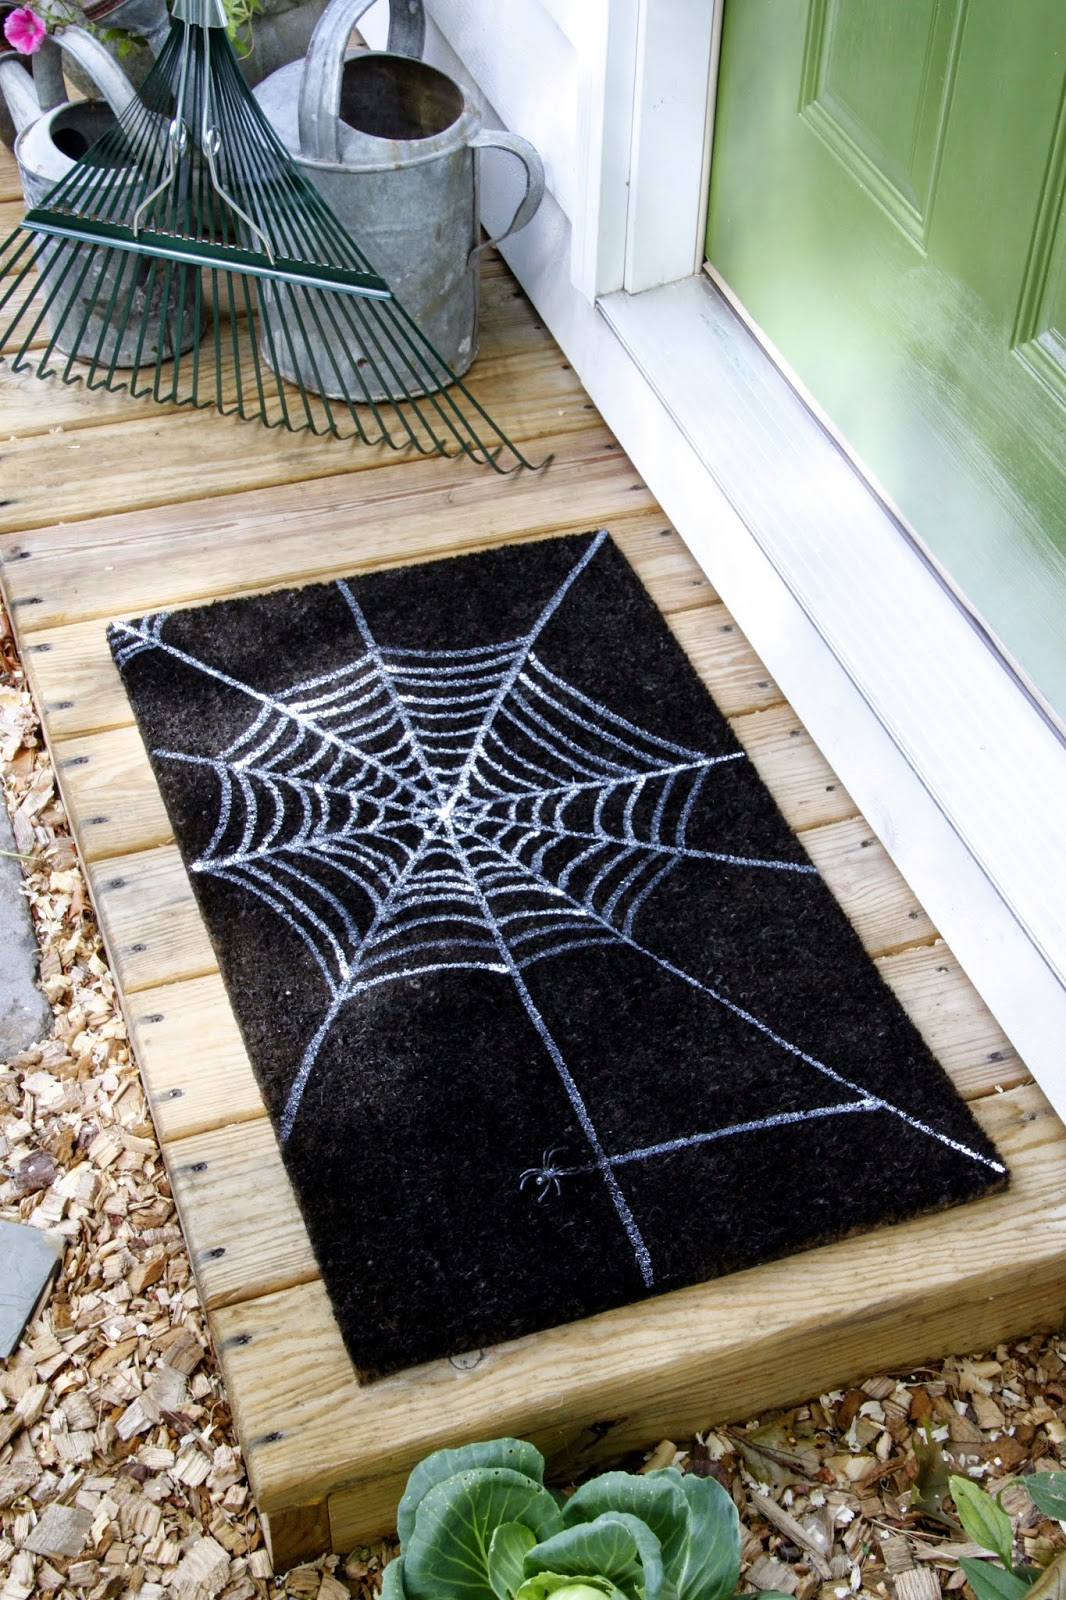 Diy Spiderweb Doormat Tilly S Nest